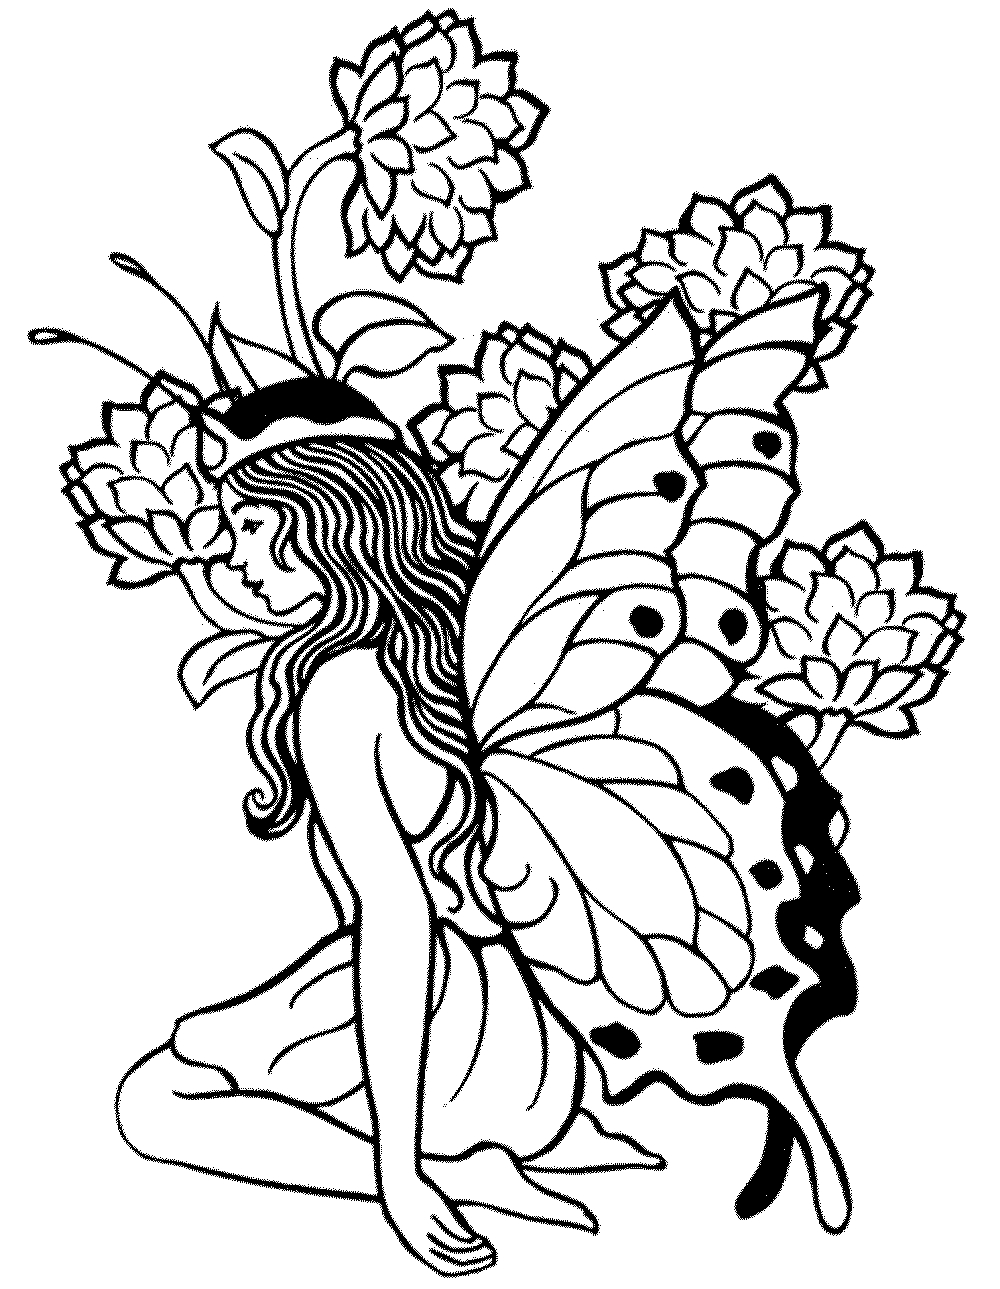 Printable Adult Coloring Pages Fairy - Coloring Home - Free Printable Coloring Pages For Adults Dark Fairies